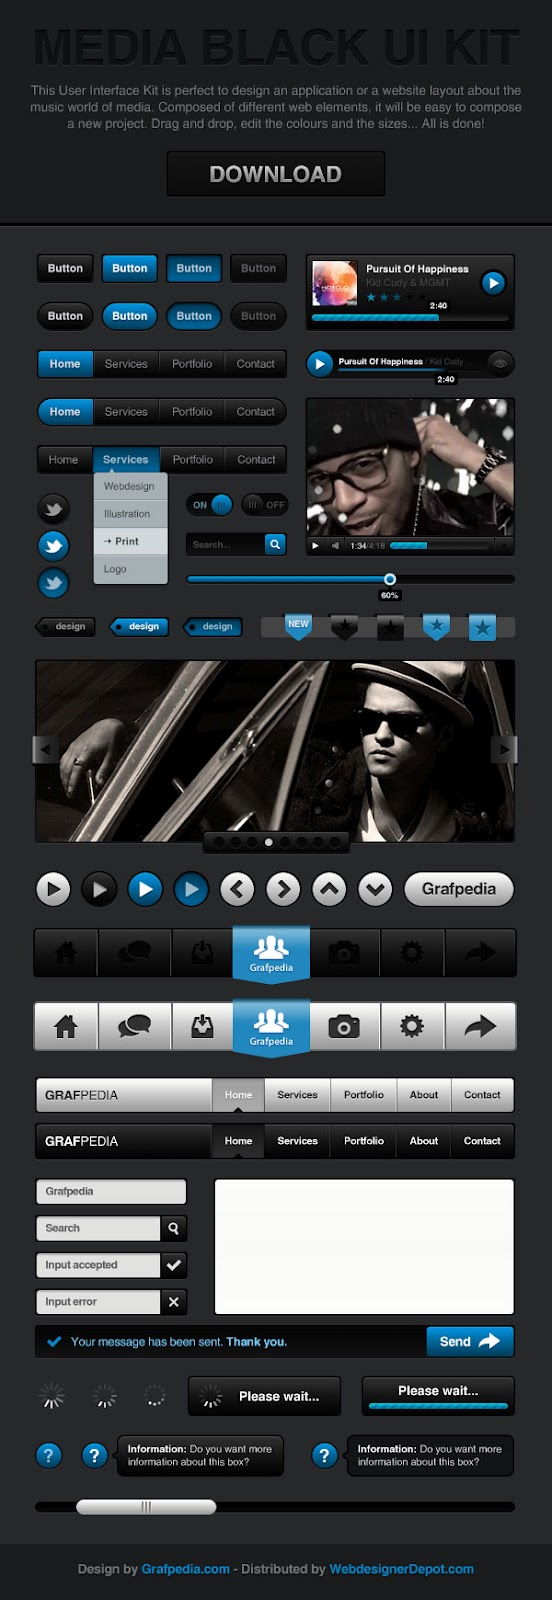 Media Black UI Kit - fully Photoshop layered PSD File